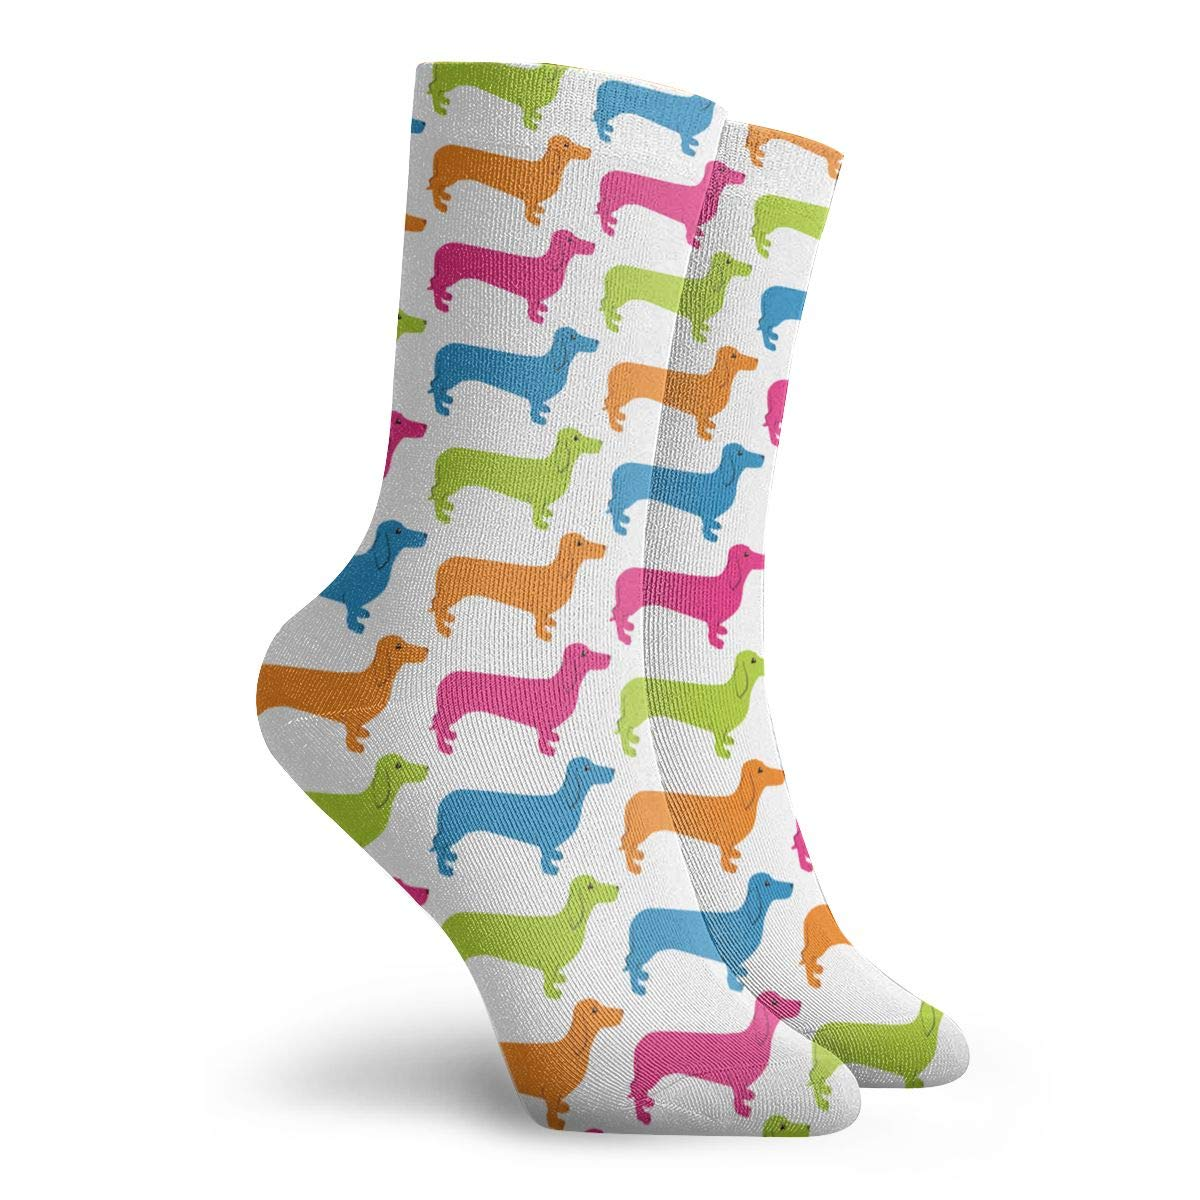 Patterns Kid-Dog Unisex Funny Casual Crew Socks Athletic Socks For Boys Girls Kids Teenagers